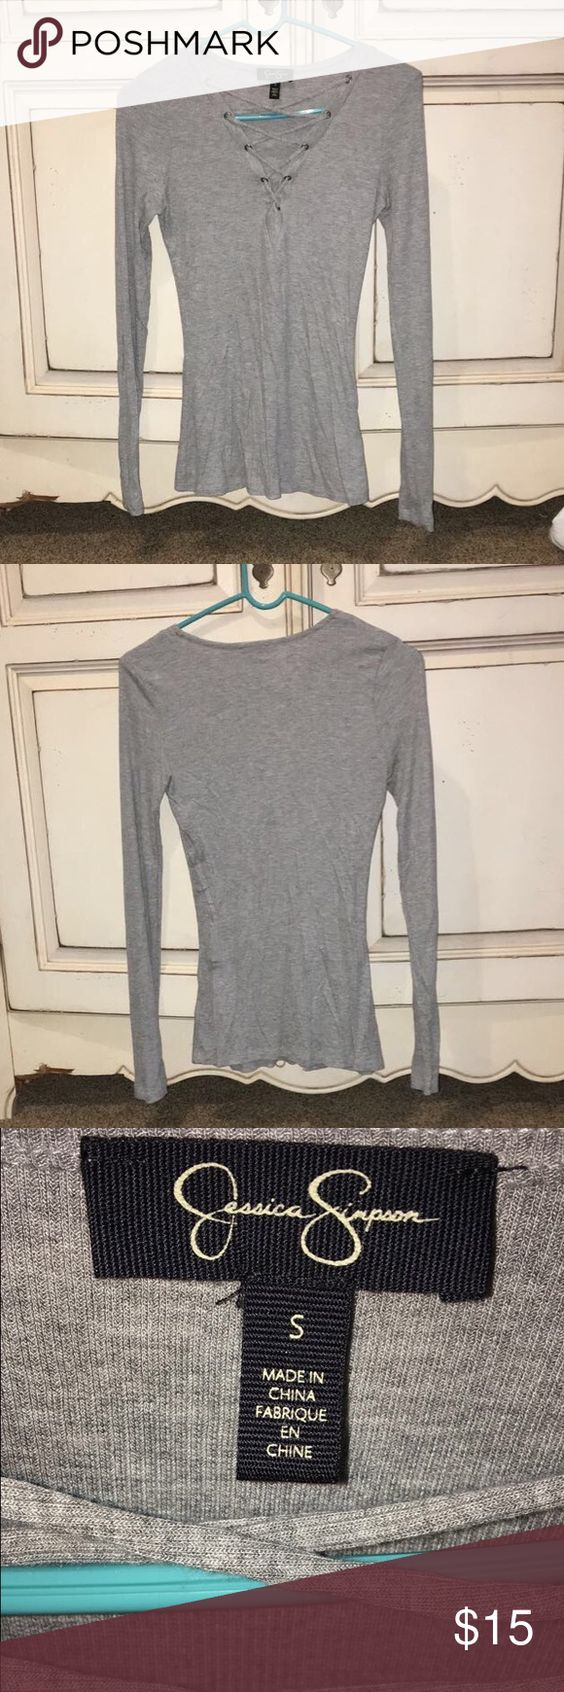 Jessica Simpson top Size small. No flaws. Jessica Simpson Tops